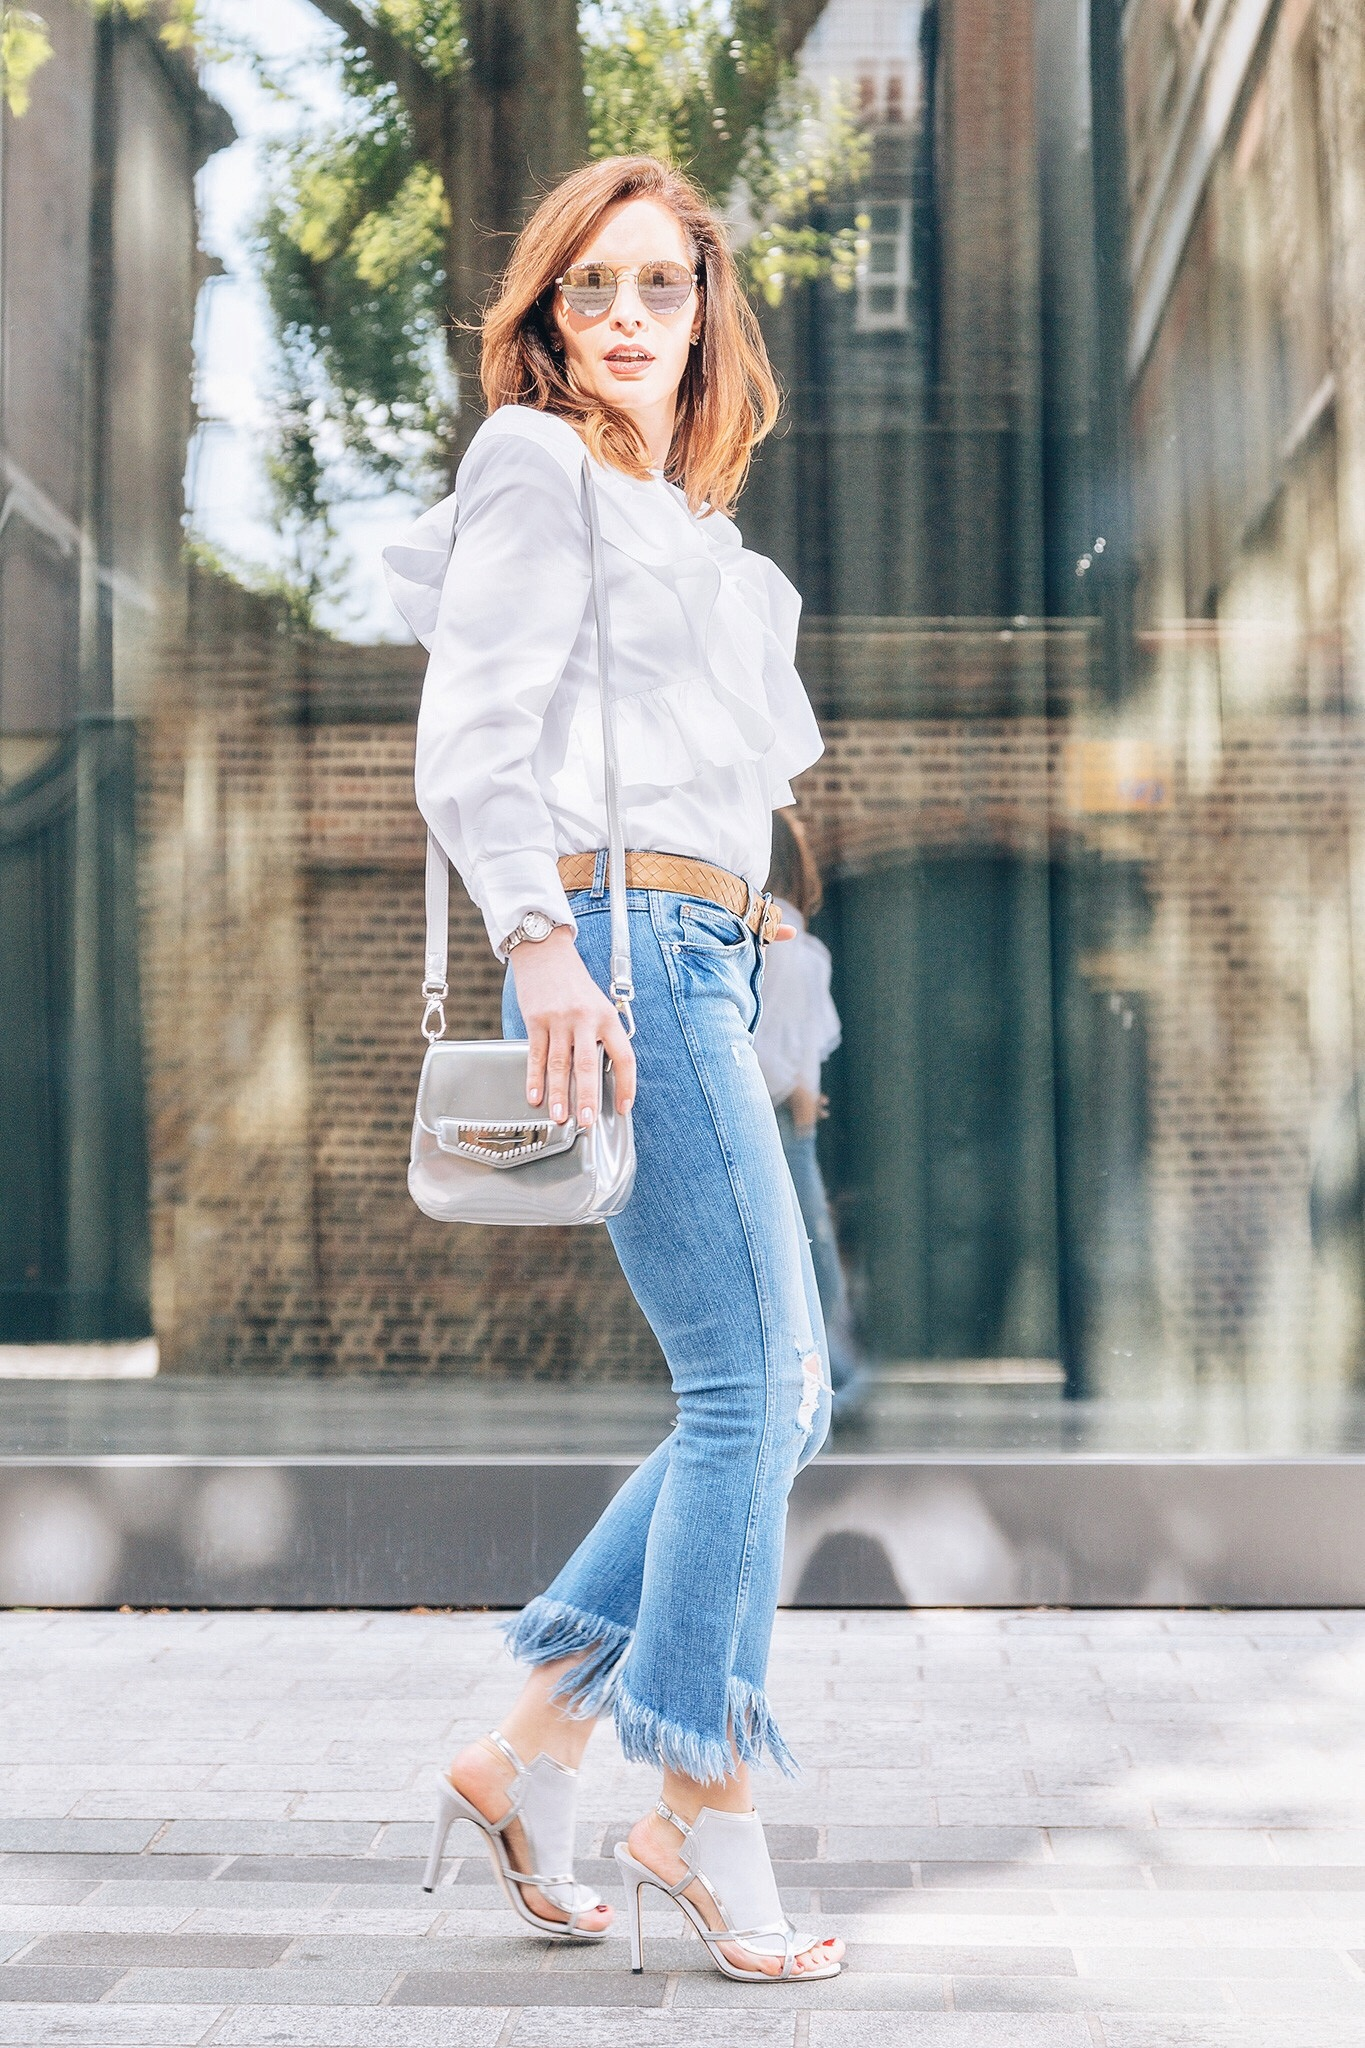 How to wear fringe jeans